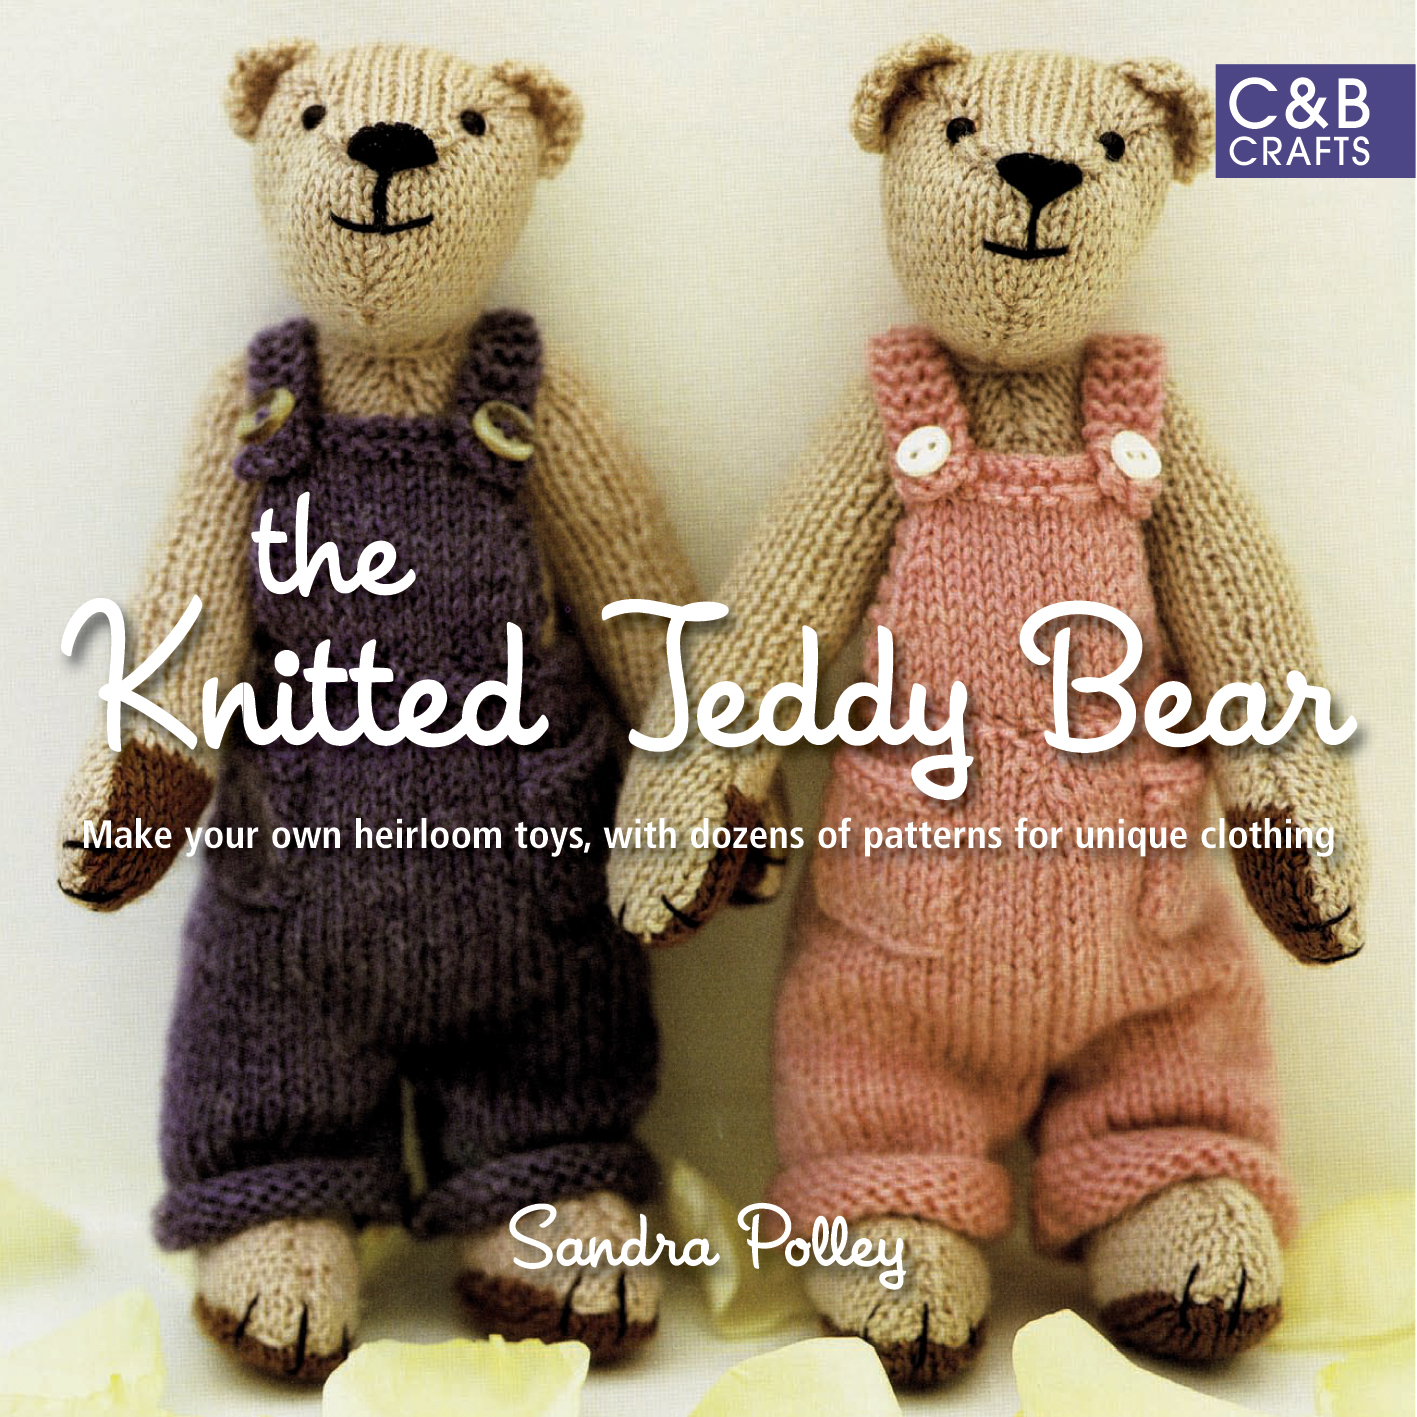 Knitting Patterns For Toys Uk Knit And Pieces Knits And Pieces Dog Coats And Toy Knitting Patterns